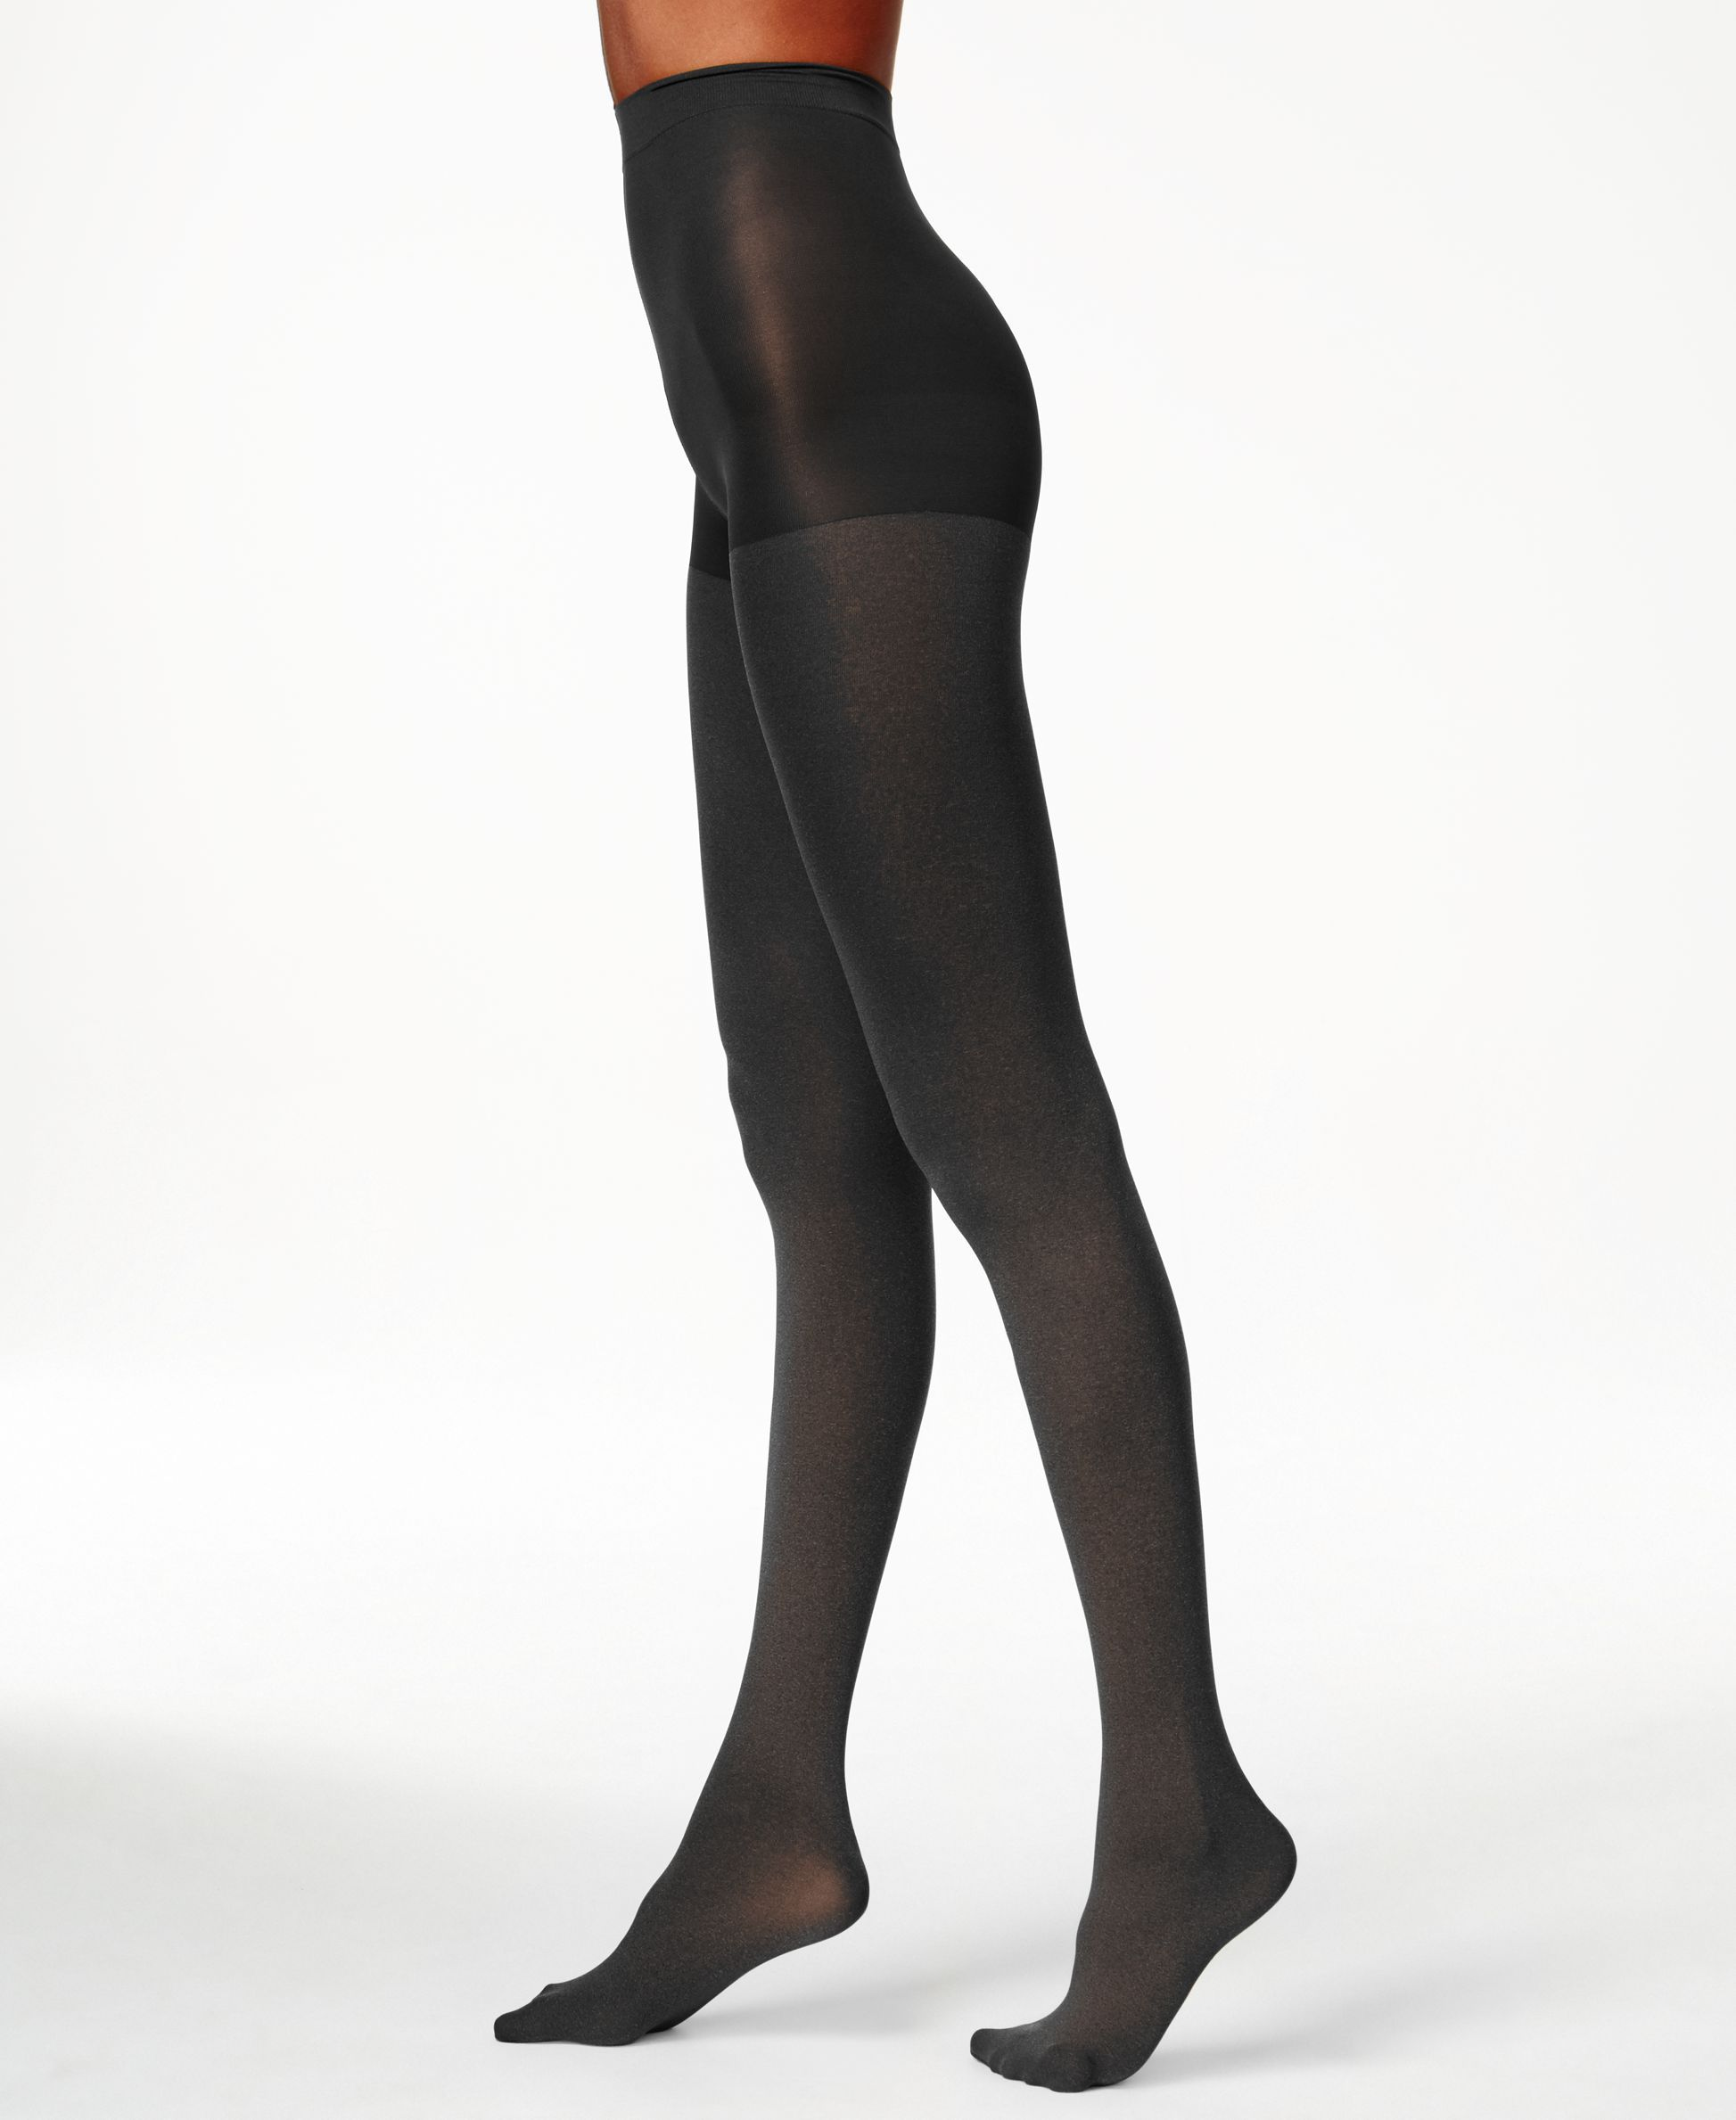 c154a912f Women s Super Control Top Opaque Tights in 2019